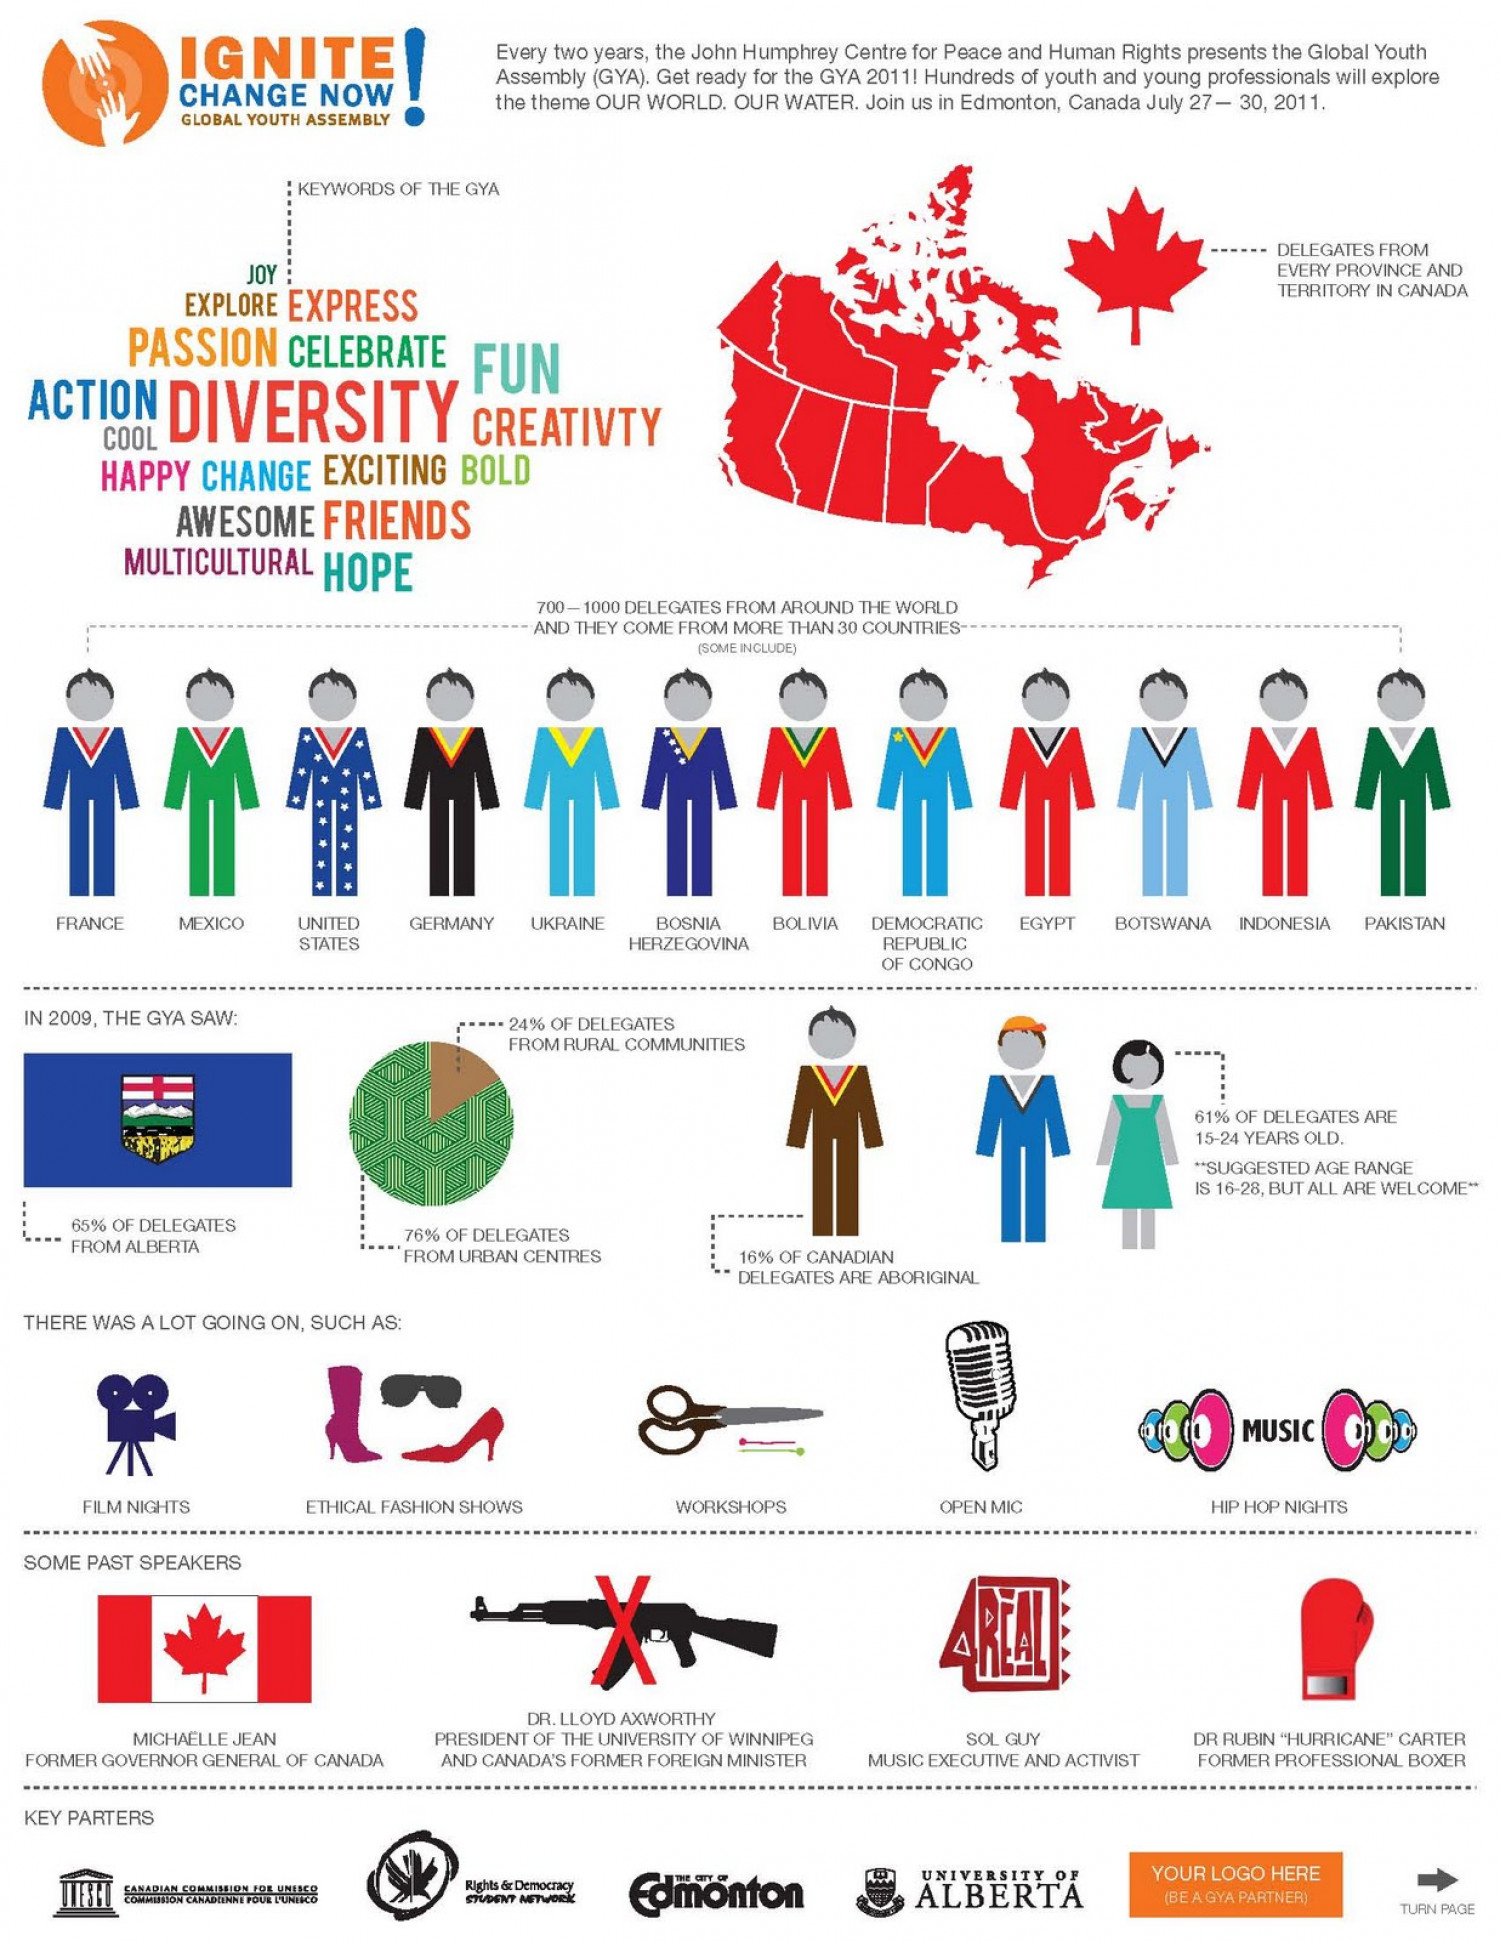 Ignite Change Now: Global Youth Assembly Infographic